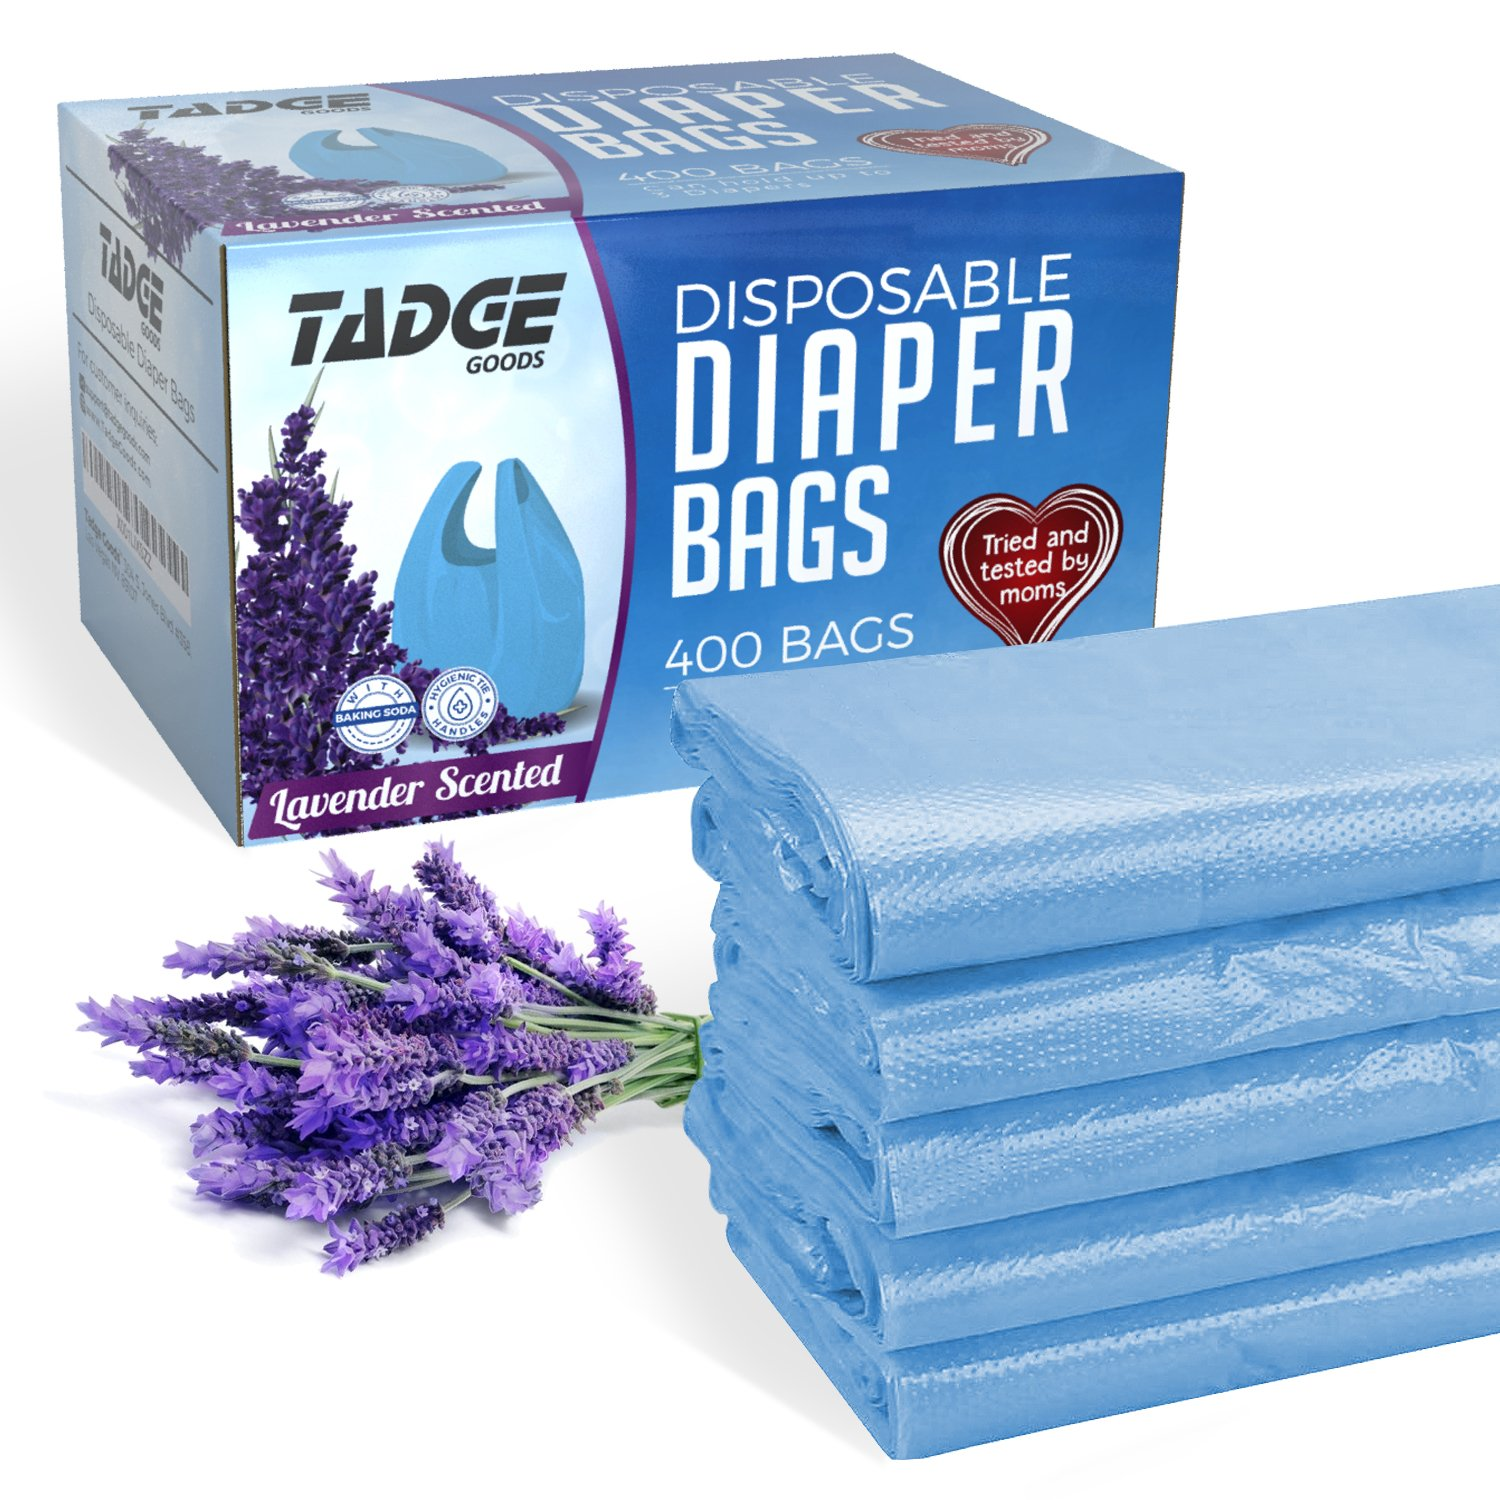 Tadge Goods Baby Disposable Diaper Bags – 100% Biodegradable Diaper Sacks with Lavender Scent & Added Baking Soda to Absorb Odors - 400 Count (Blue)